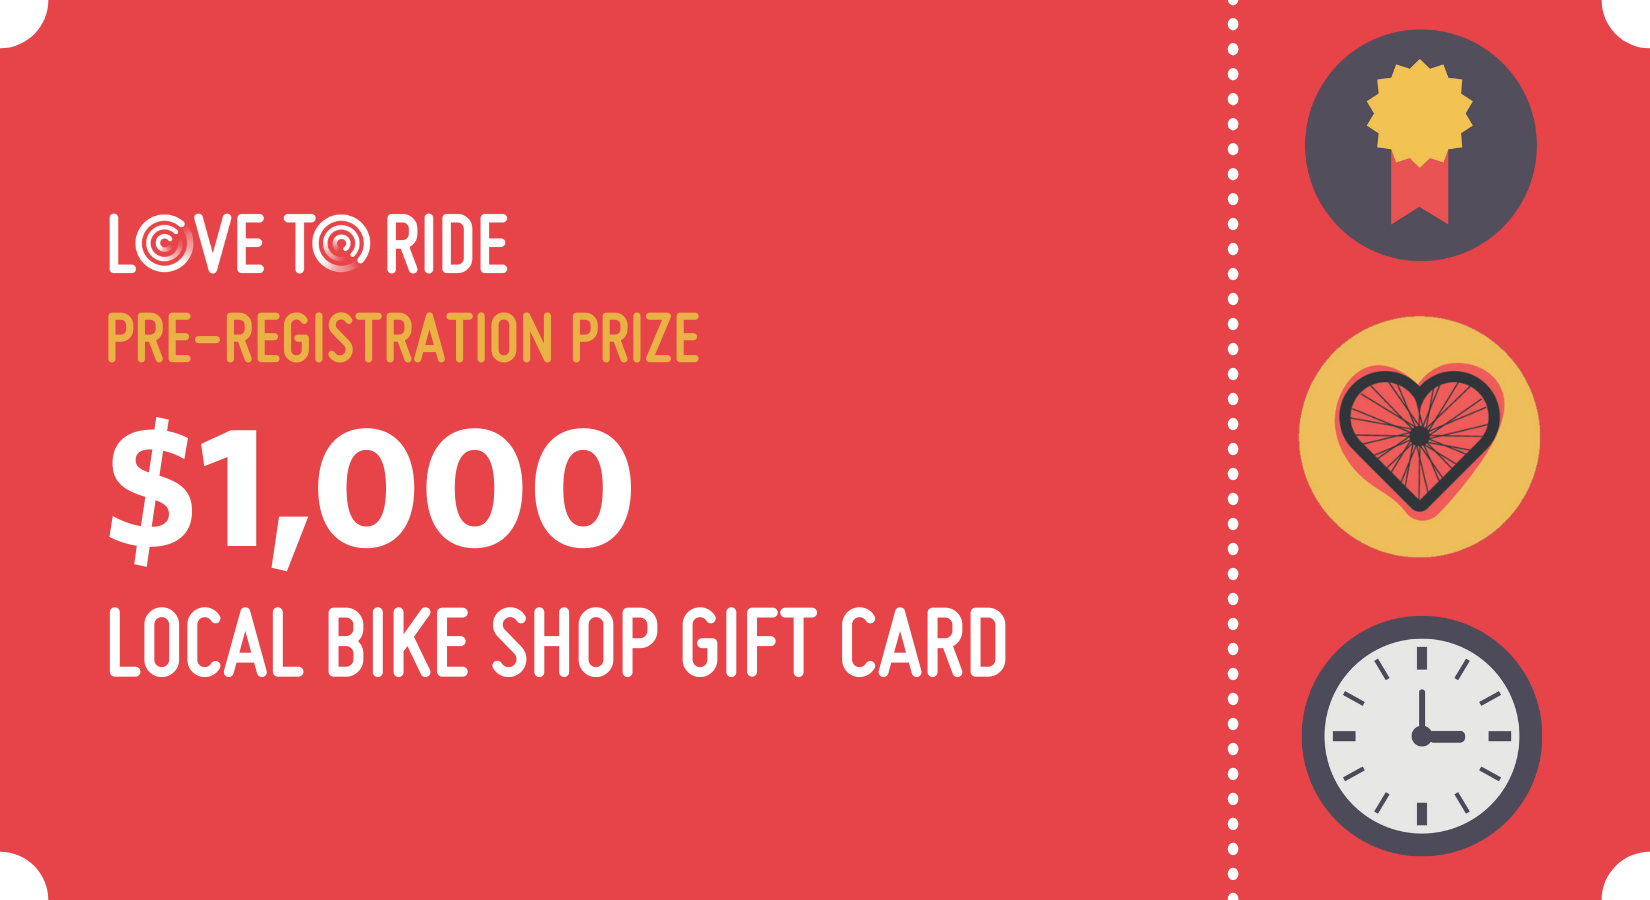 Love to Ride local bike shop gift card with value of one thousand dollars